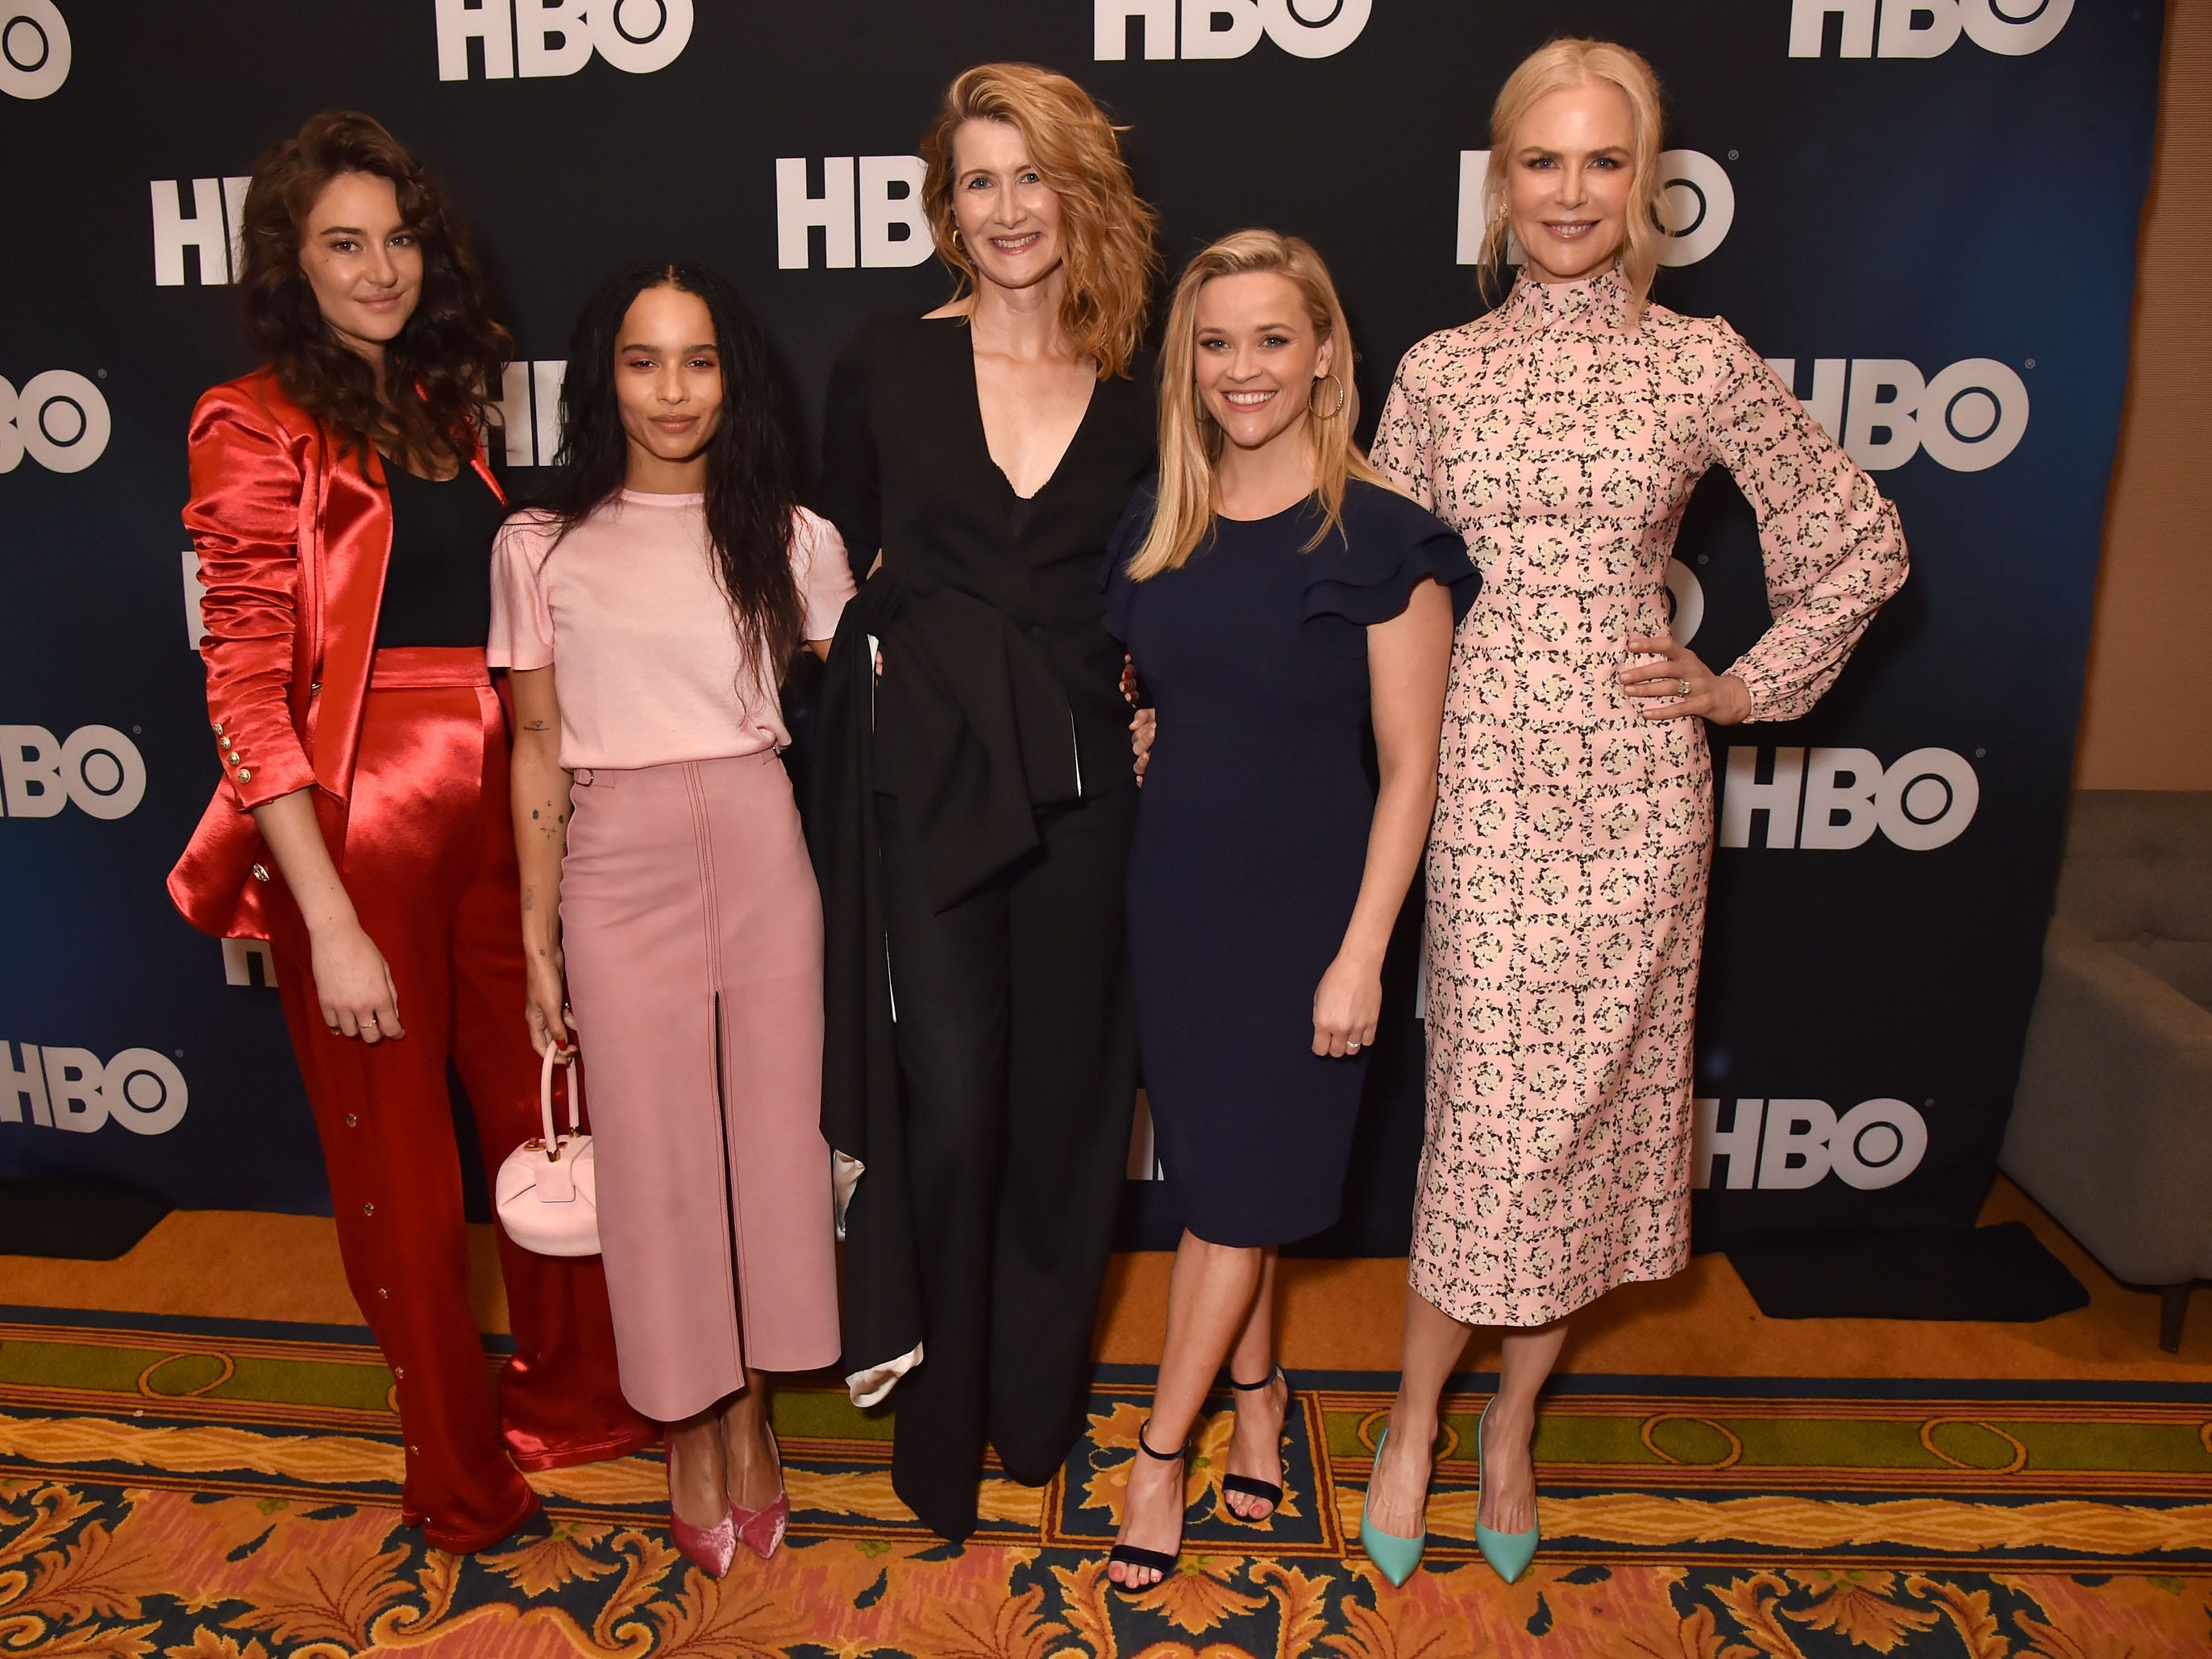 "The ladies of ""Big Little Lies"" reunite to promote the show's second season Feb. 8, 2019, at the Television Critics Association's winter  press tour in Los Angeles. (From left: Shailene Woodley, Zoe Kravitz, Laura Dern, Reese Witherspoon and Nicole Kidman)"